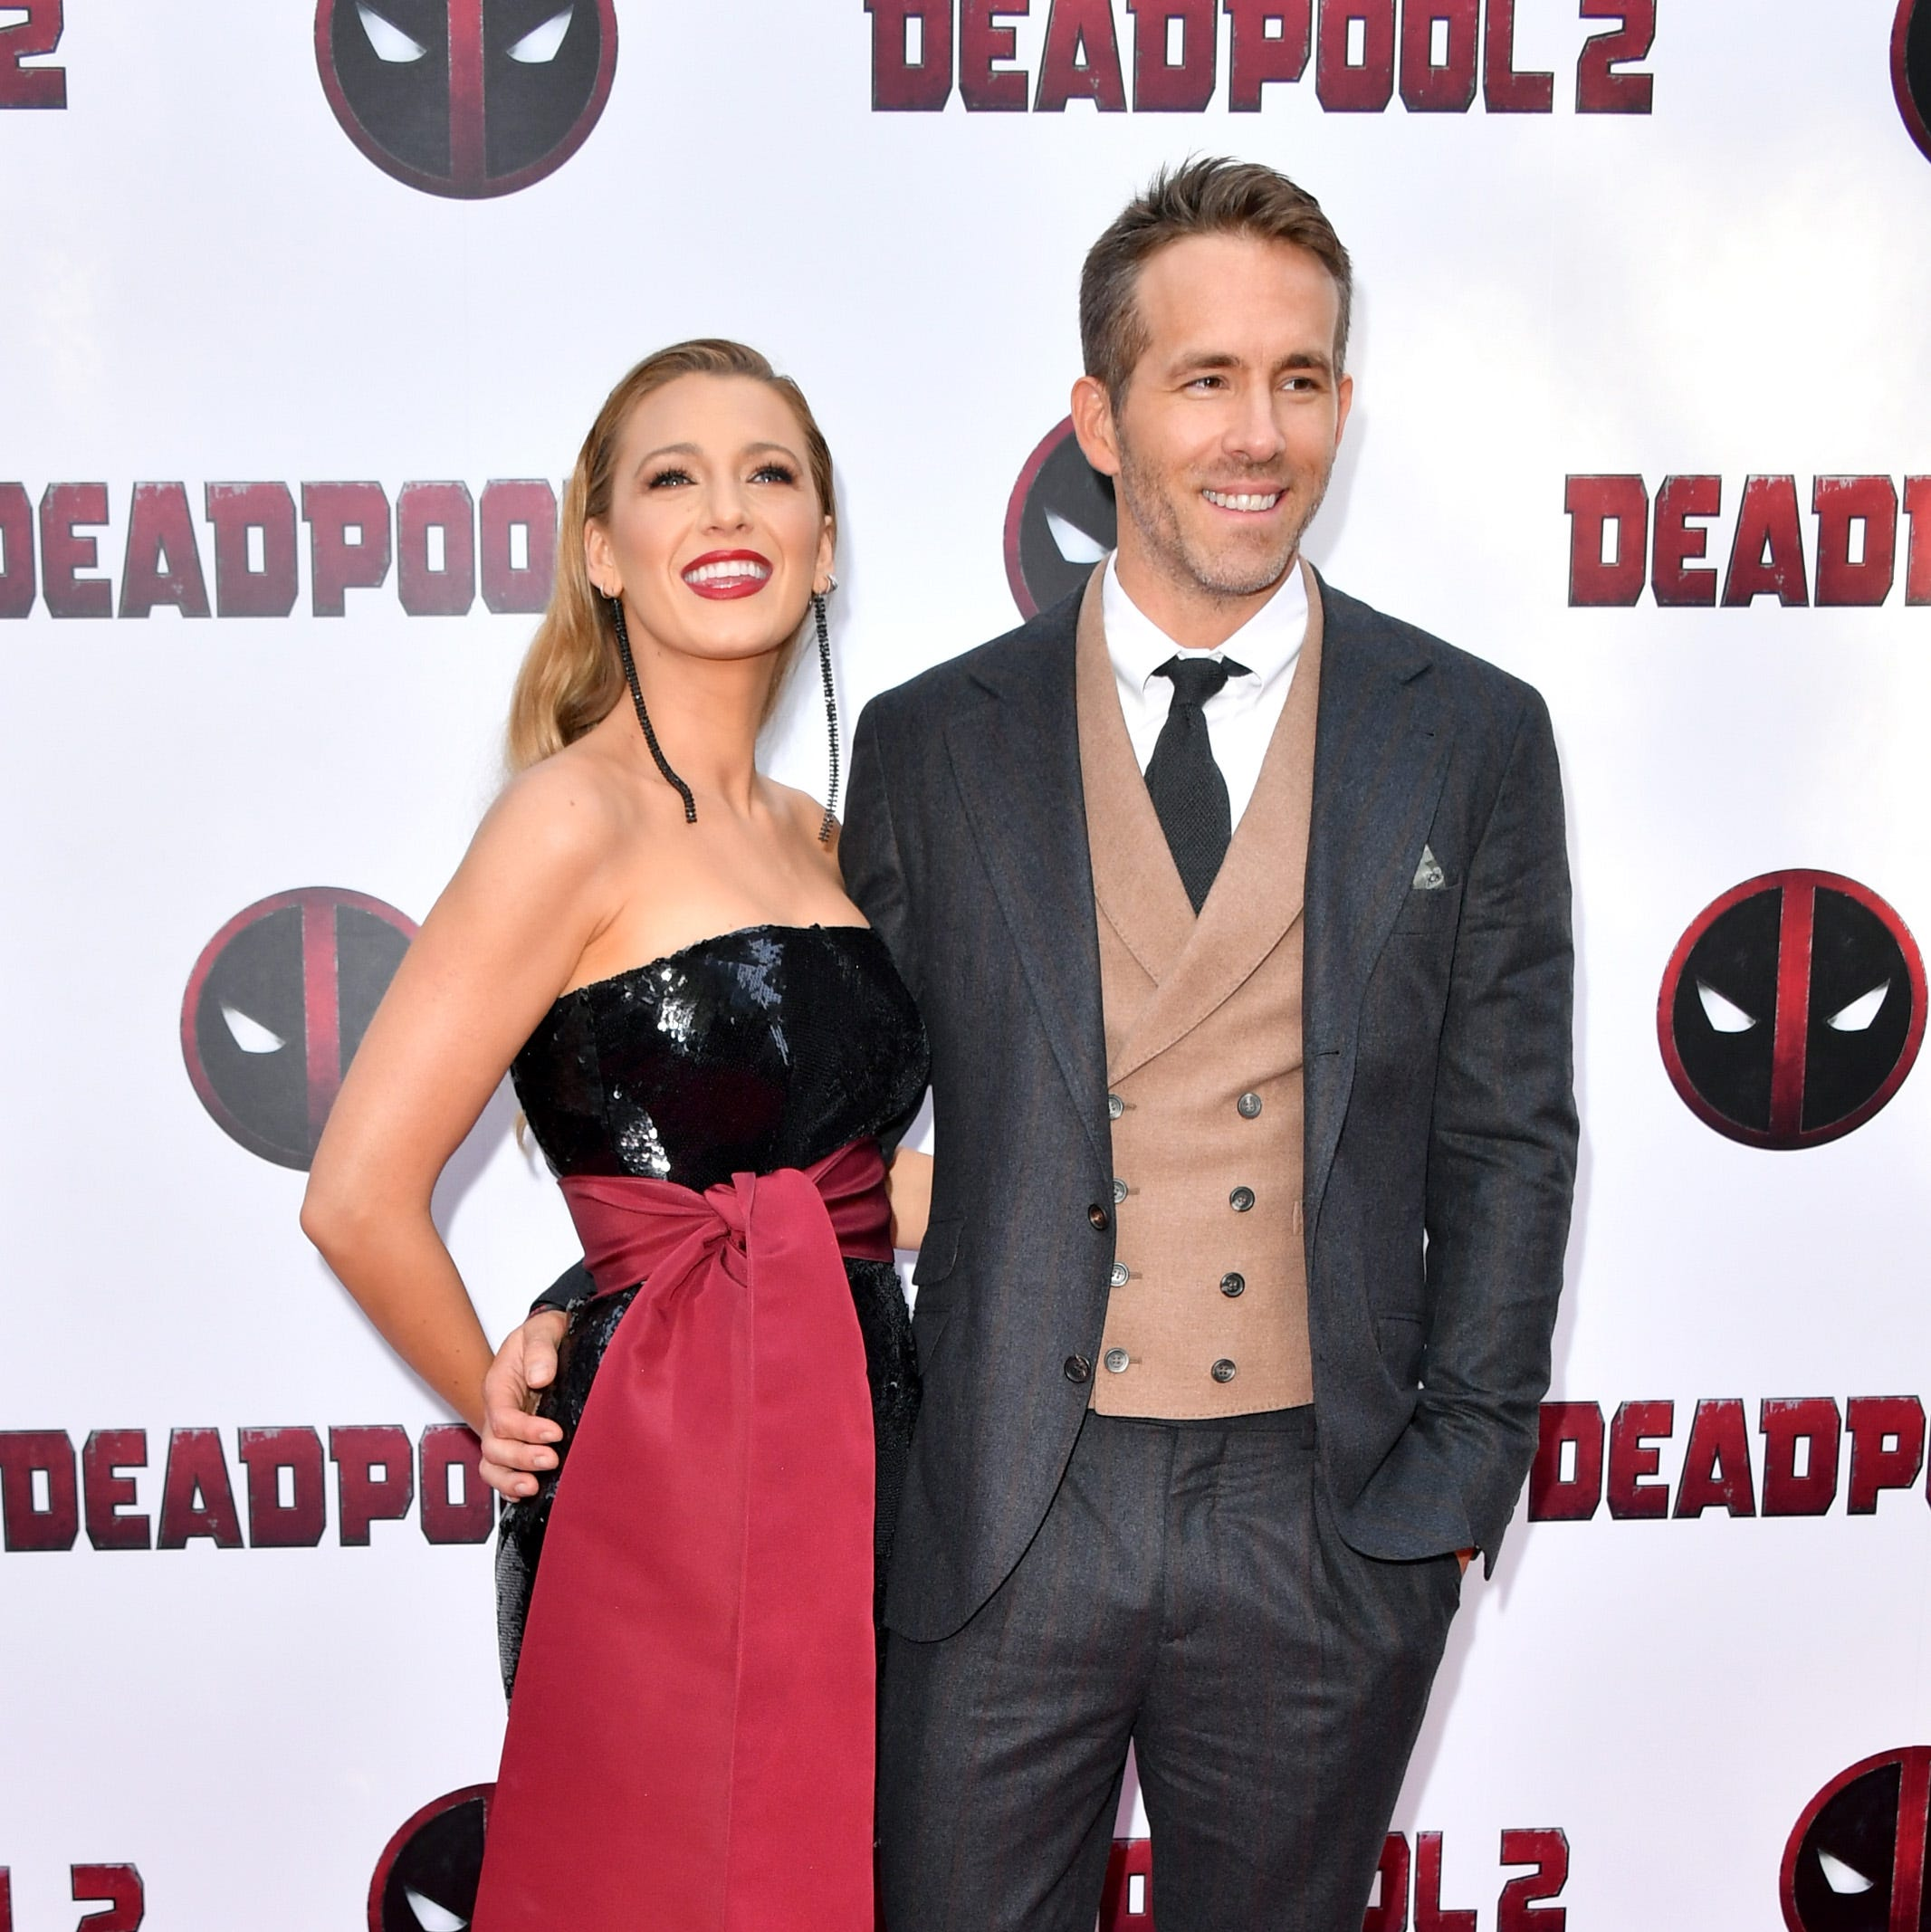 NEW YORK, NY - MAY 14:  Actors Blake Lively (L) and Ryan Reynolds attend the 'Deadpool 2' screening at AMC Loews Lincoln Square on May 14, 2018 in New York City.  (Photo by Michael Loccisano/Getty Images) ORG XMIT: 775163876 ORIG FILE ID: 958590586